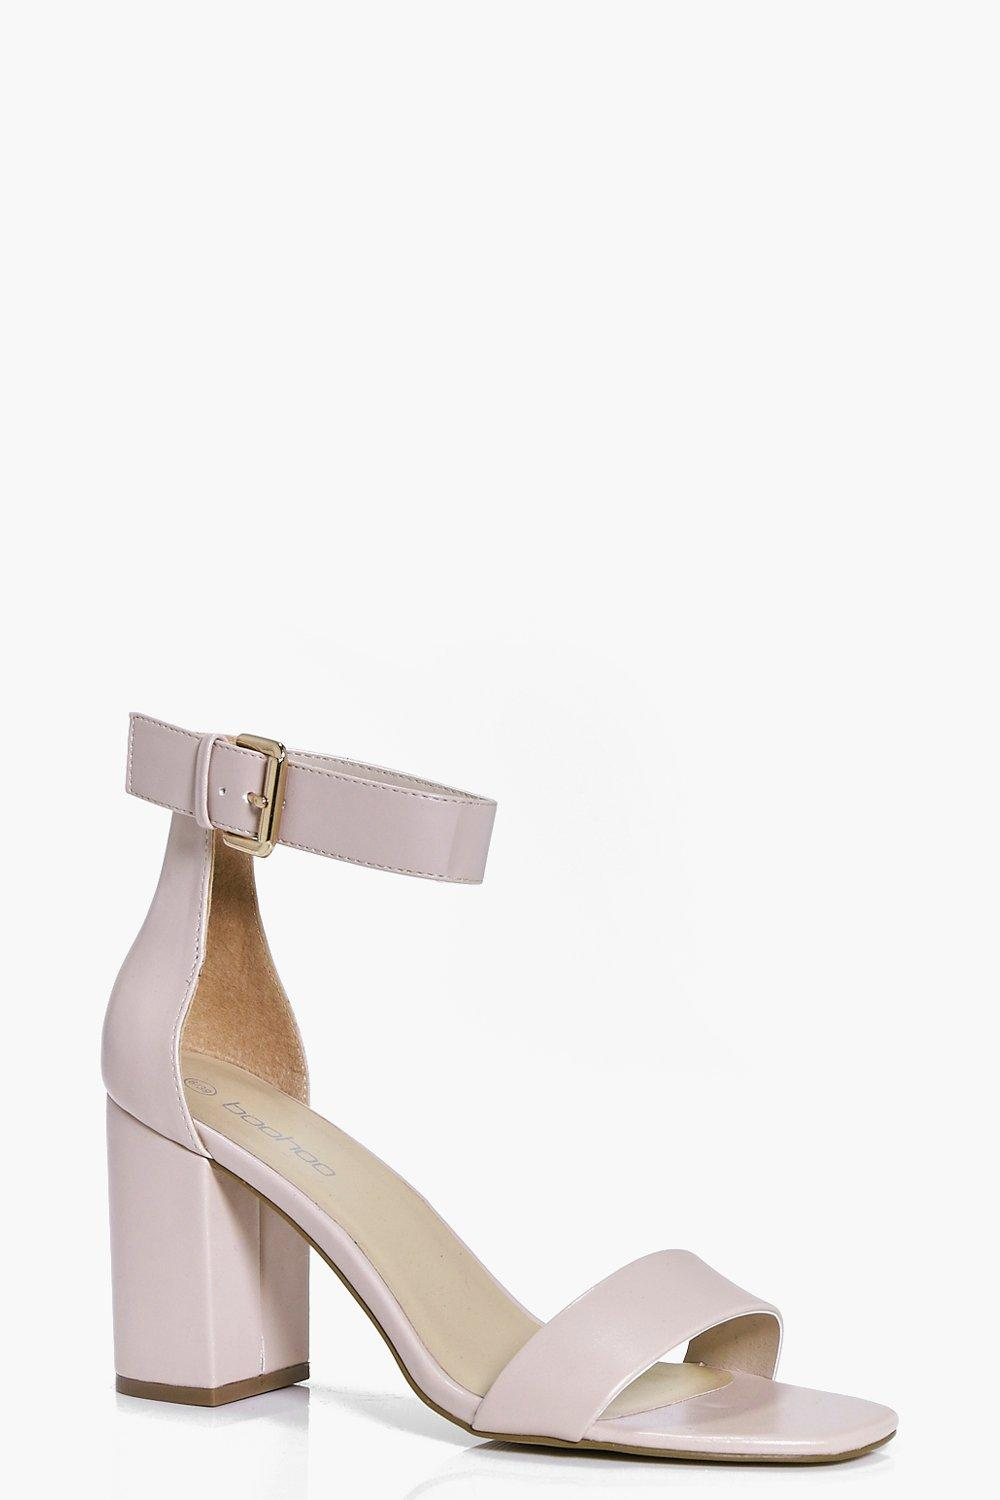 Frances Two Part Block Heels